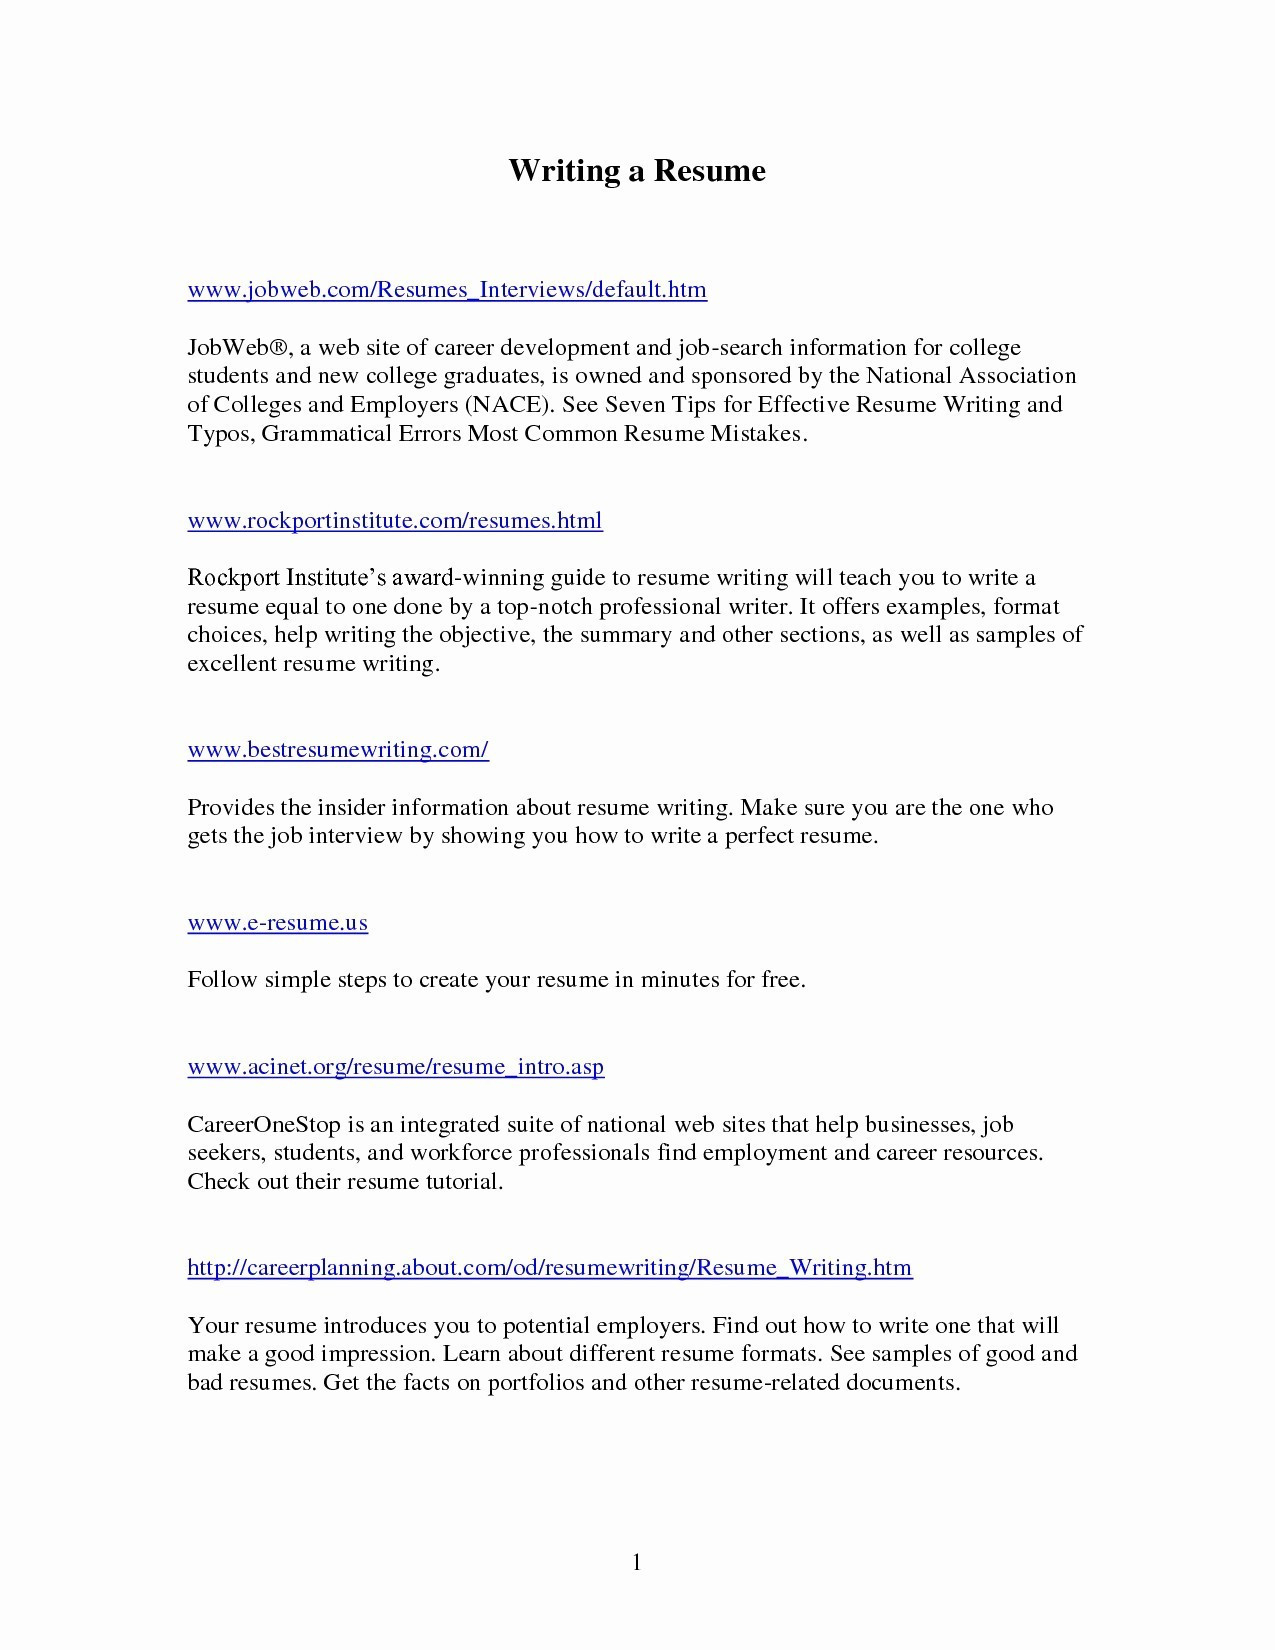 What Makes A Great Resume - Beautiful Line Cv New Resume format Professional Resume Resume